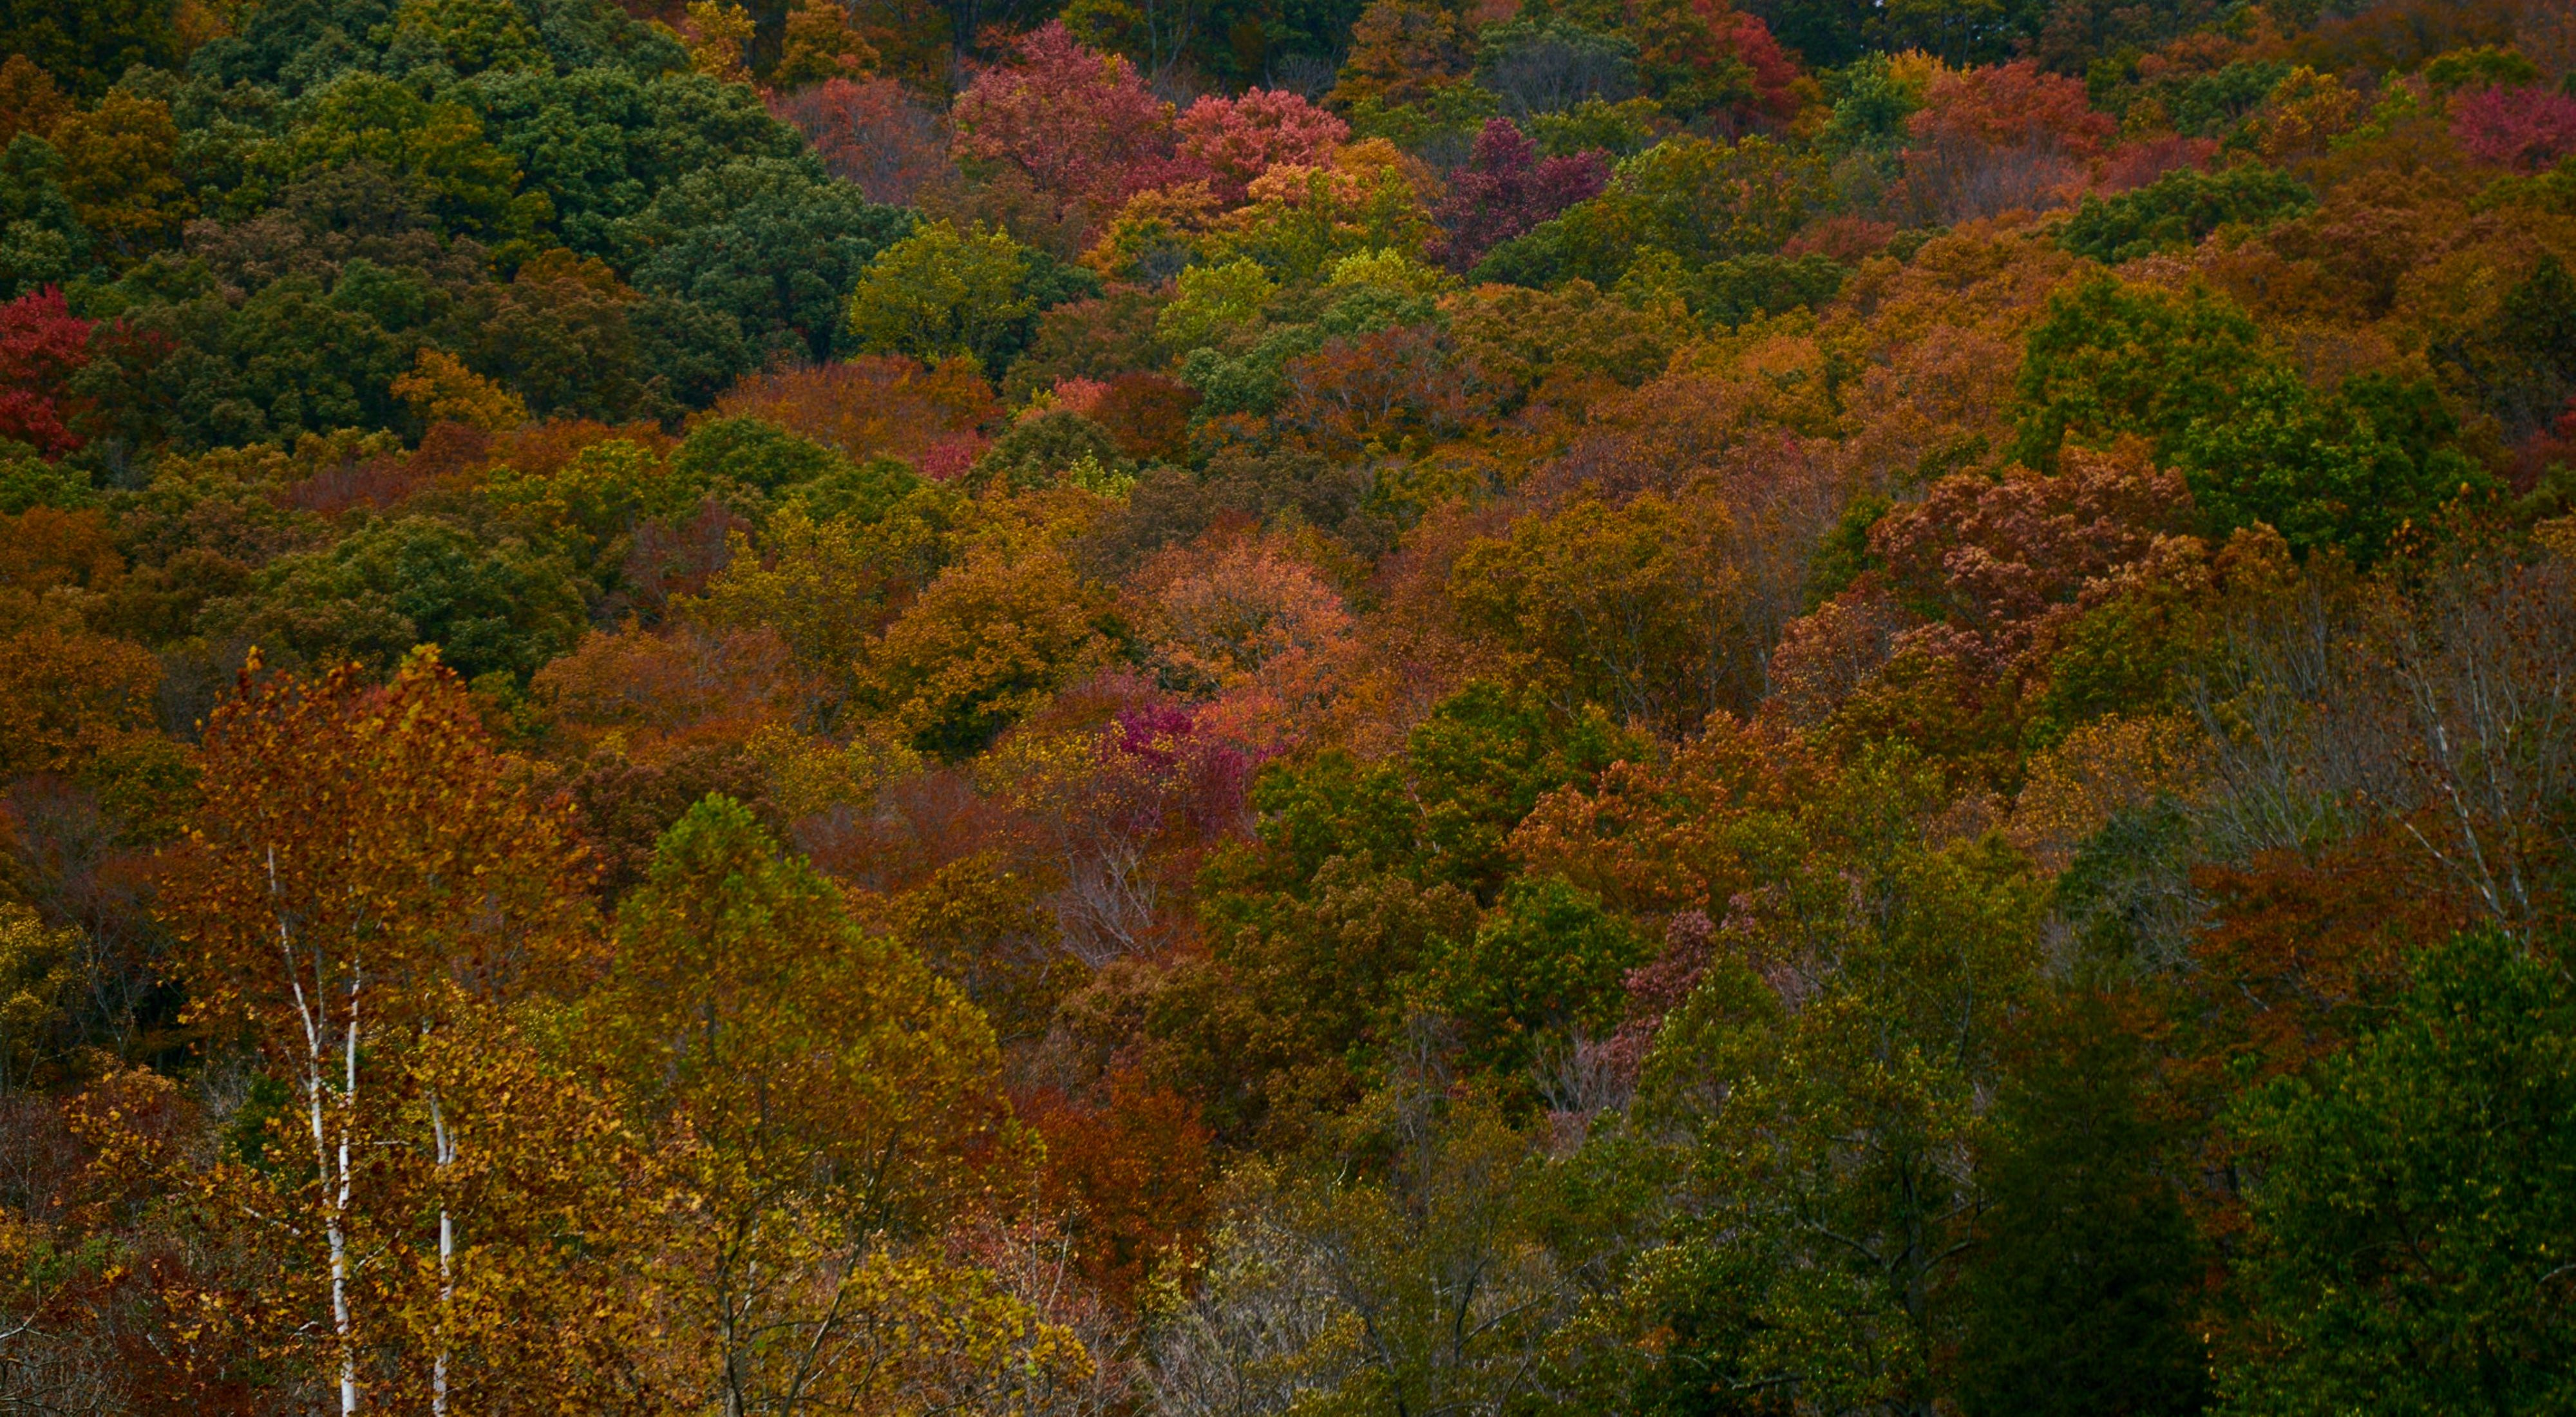 Scenery from forests in Ohio.